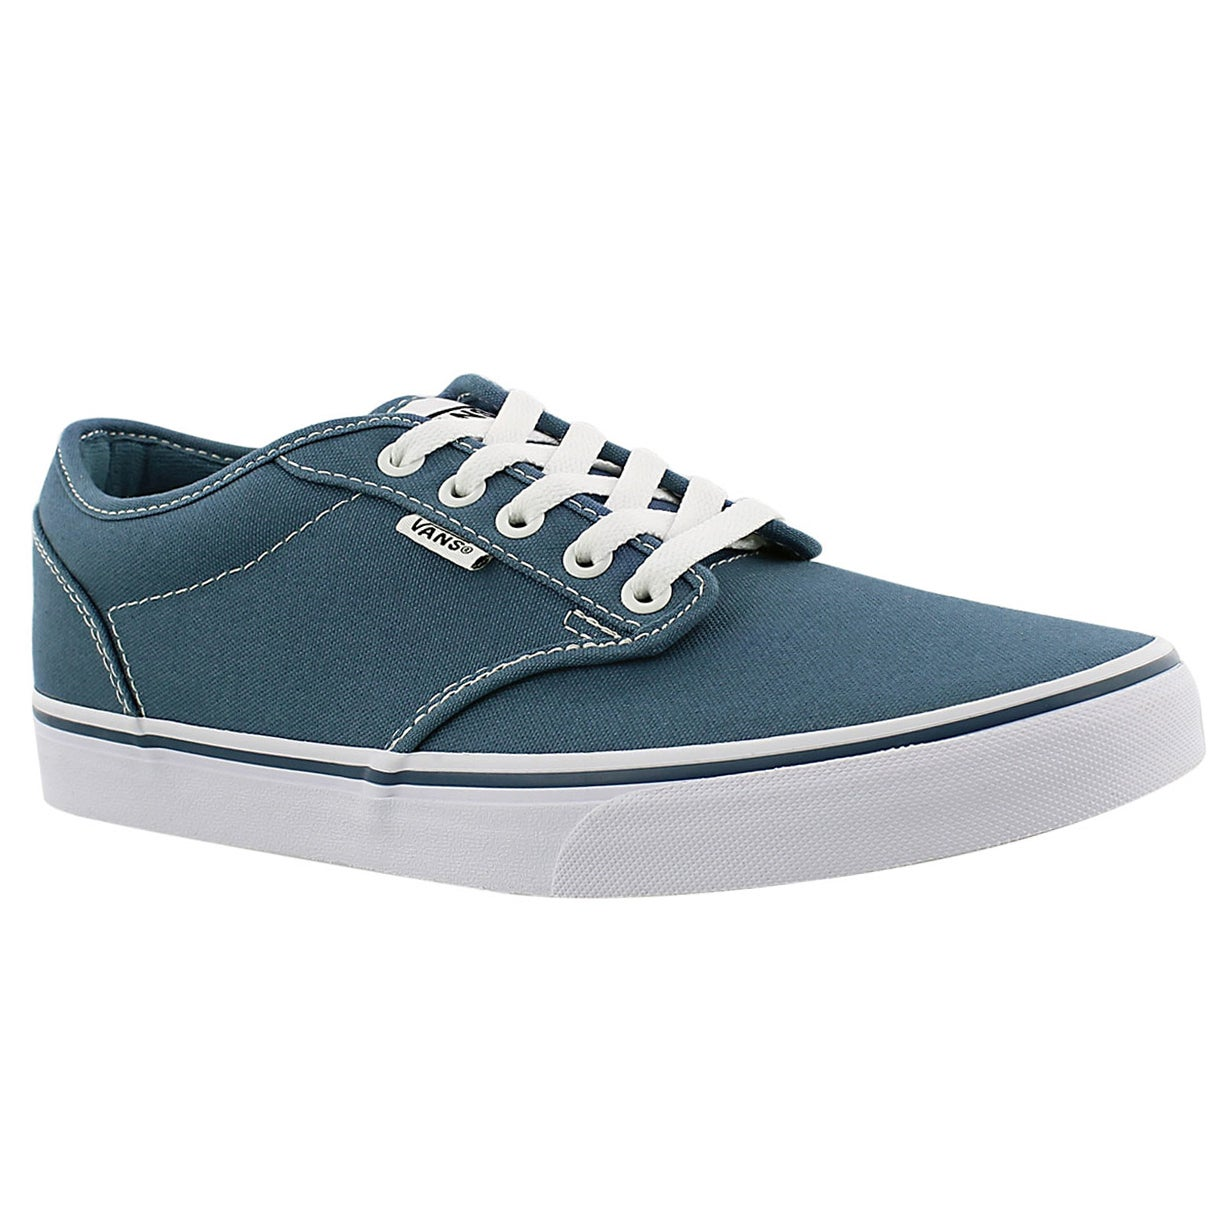 Men's ATWOOD blue canvas lace up sneakers